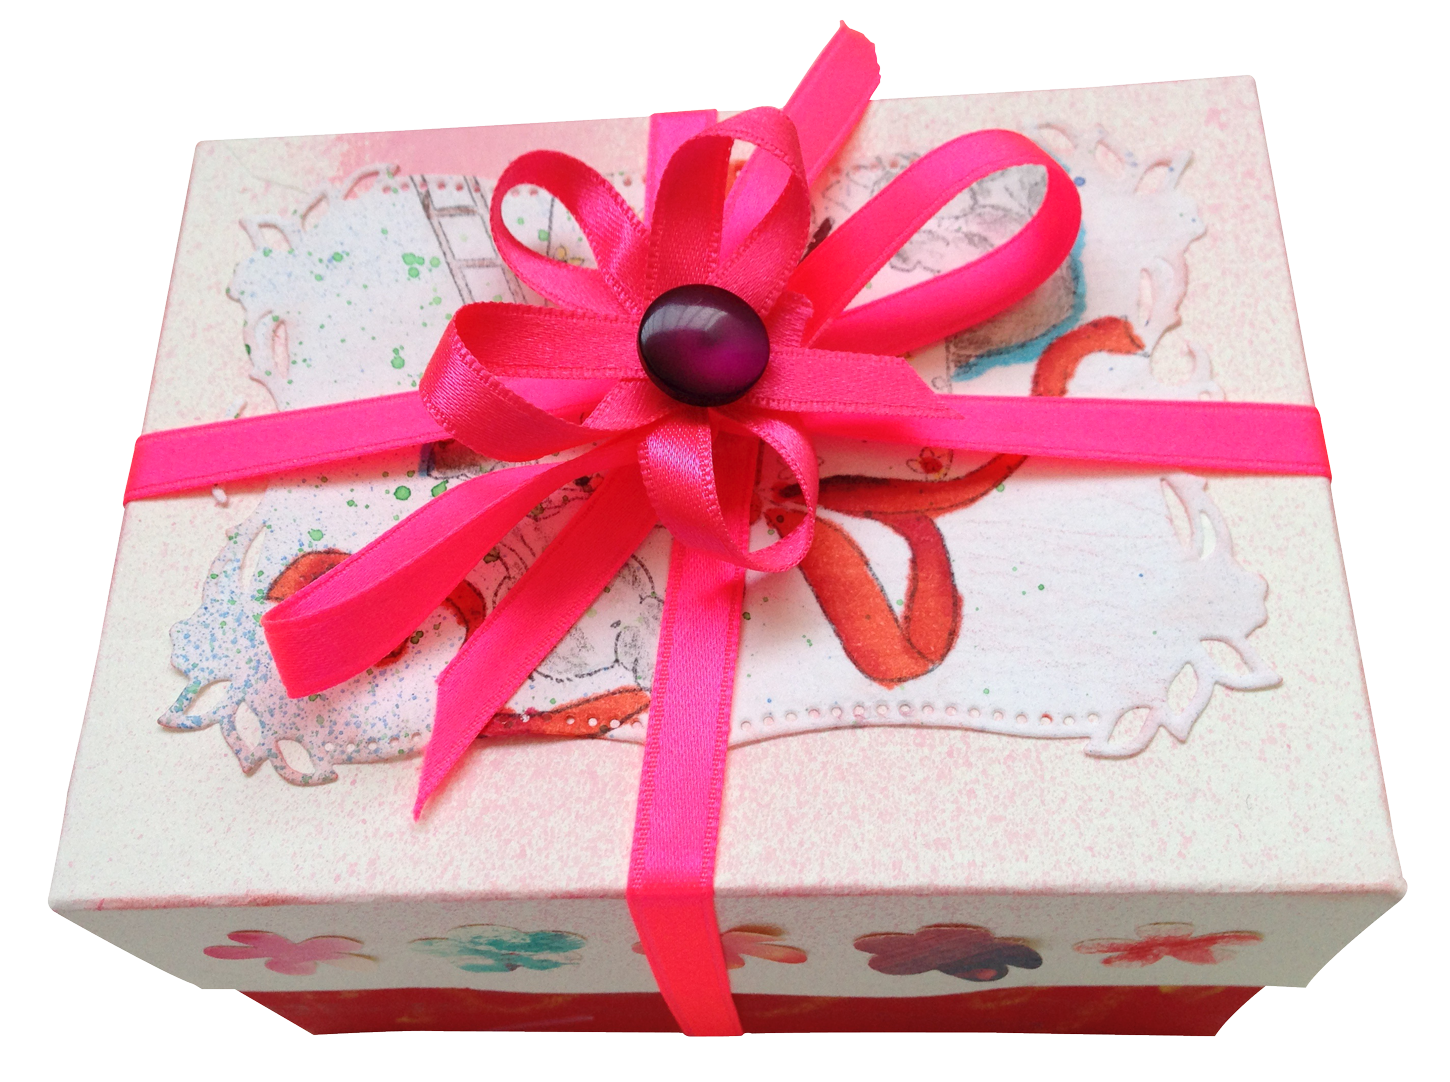 Pink Present  PNG Image